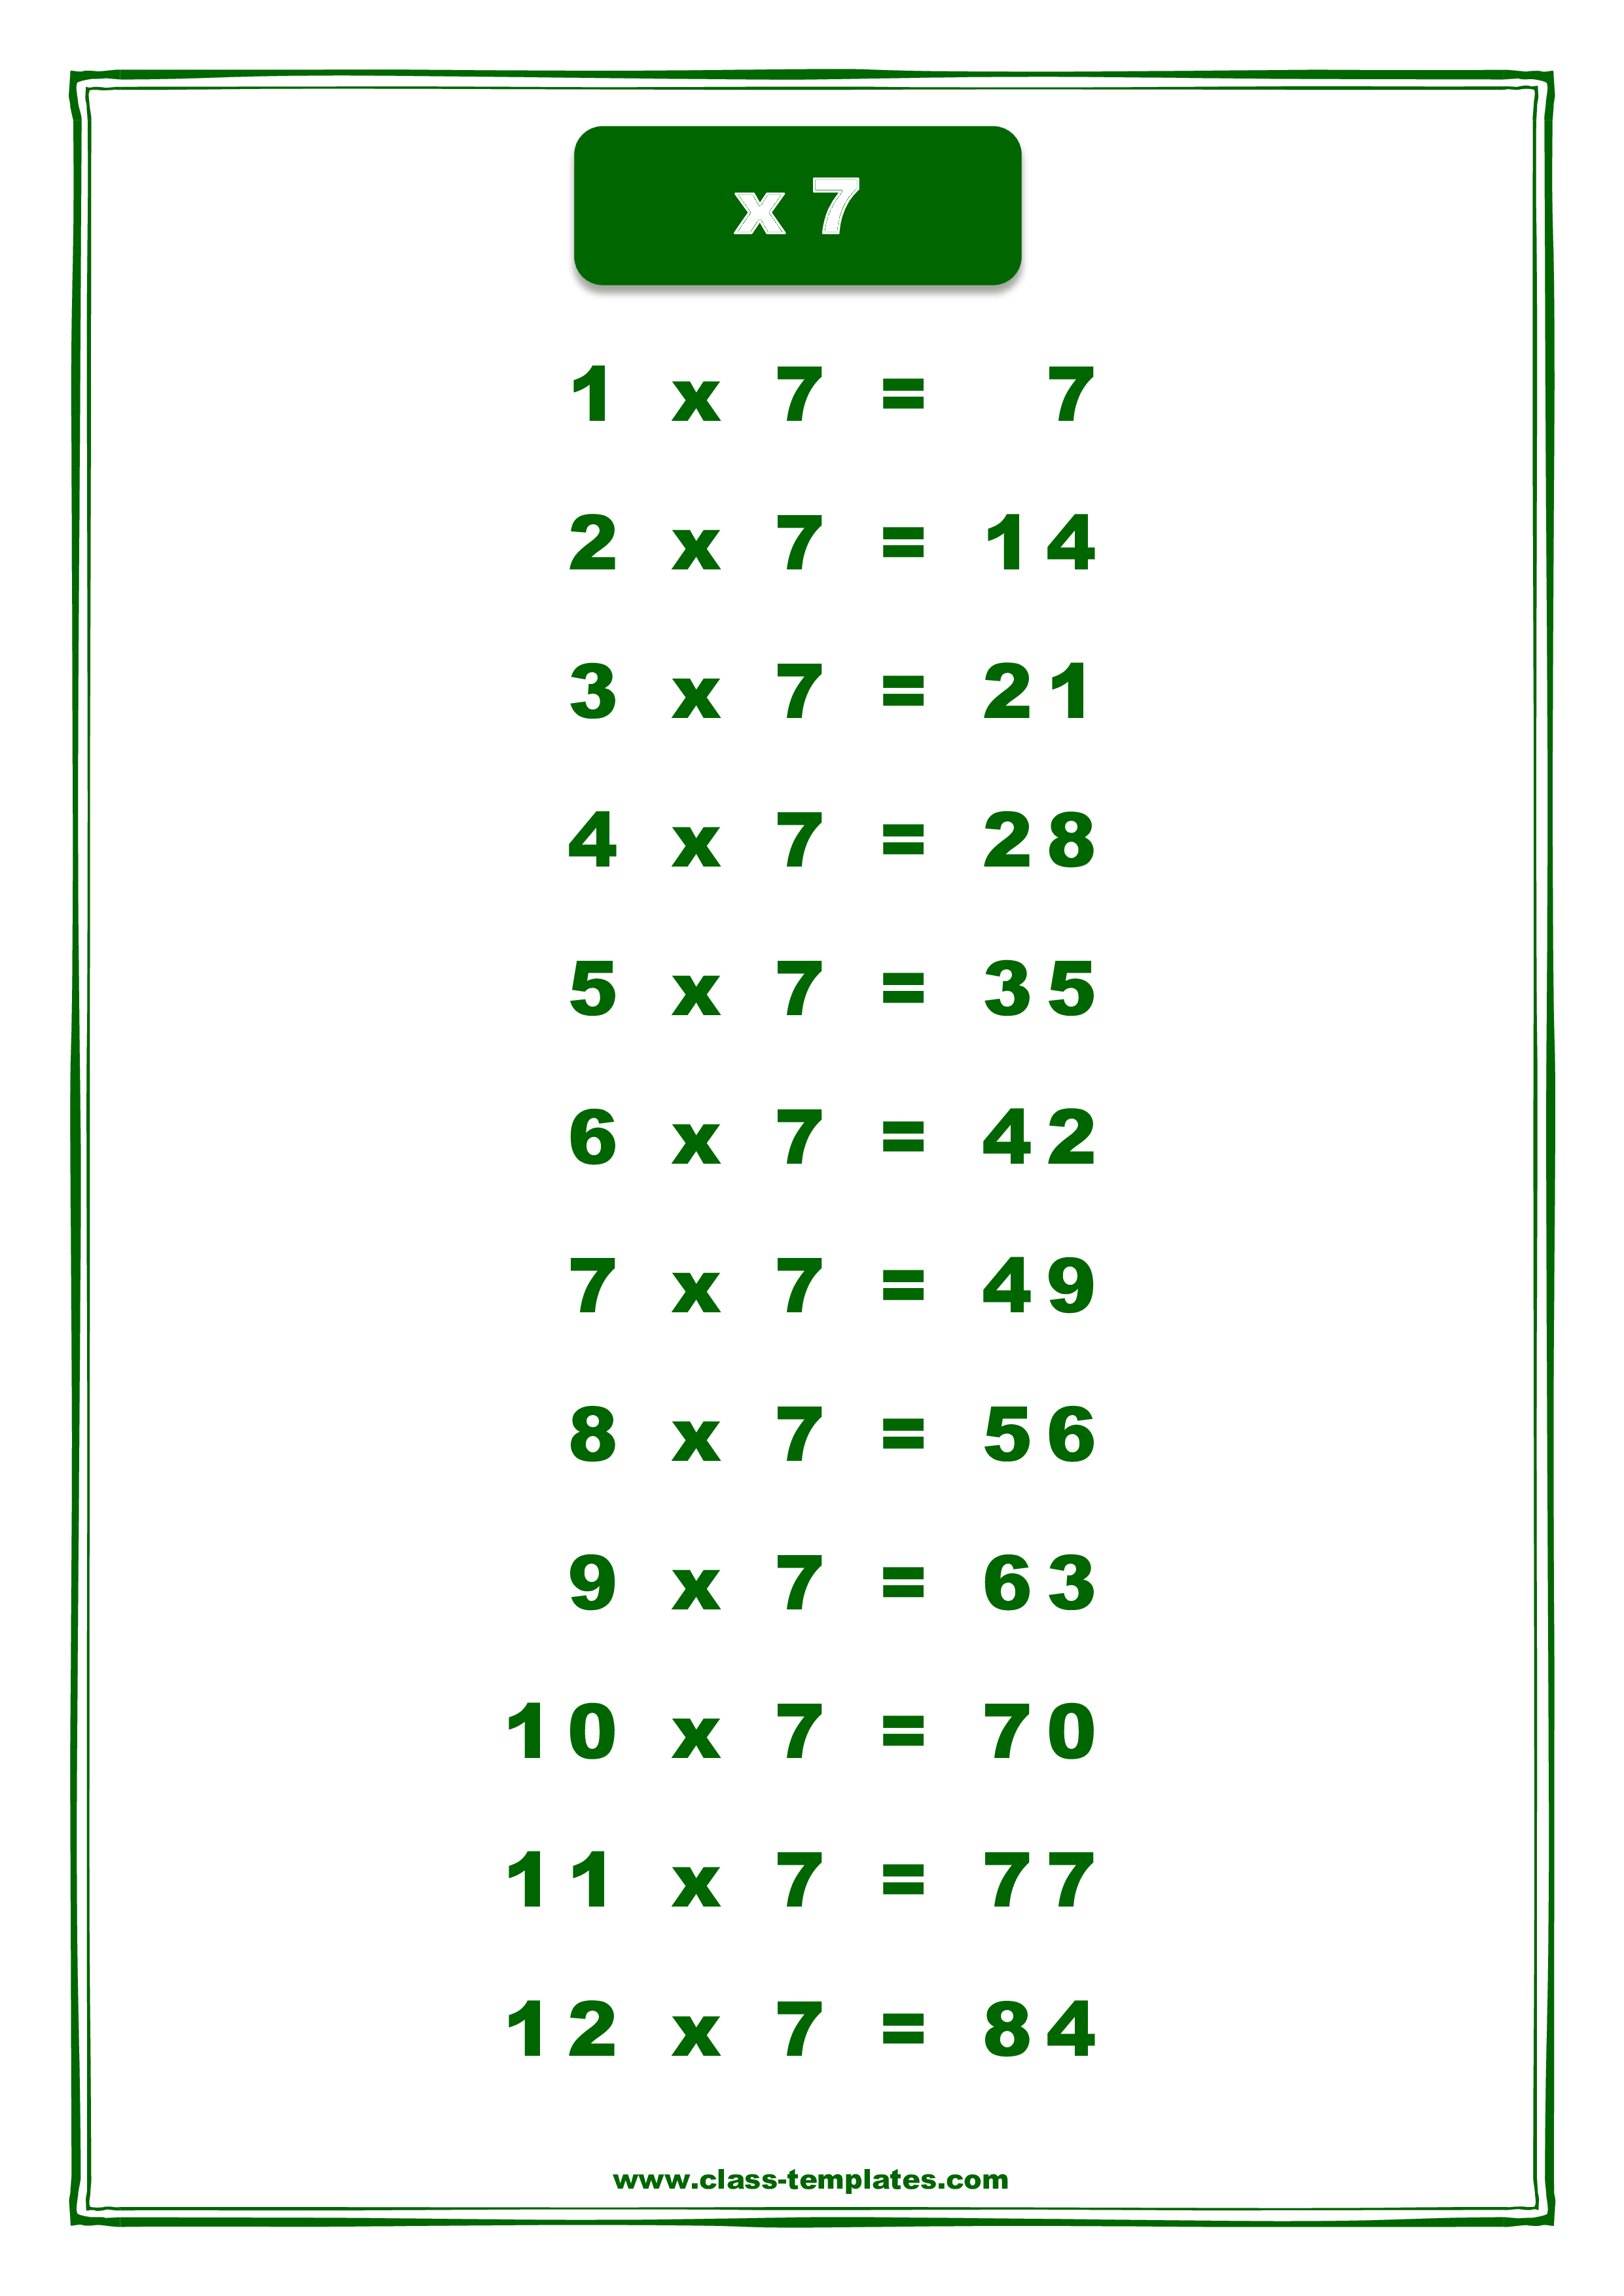 X7 Times Table Chart